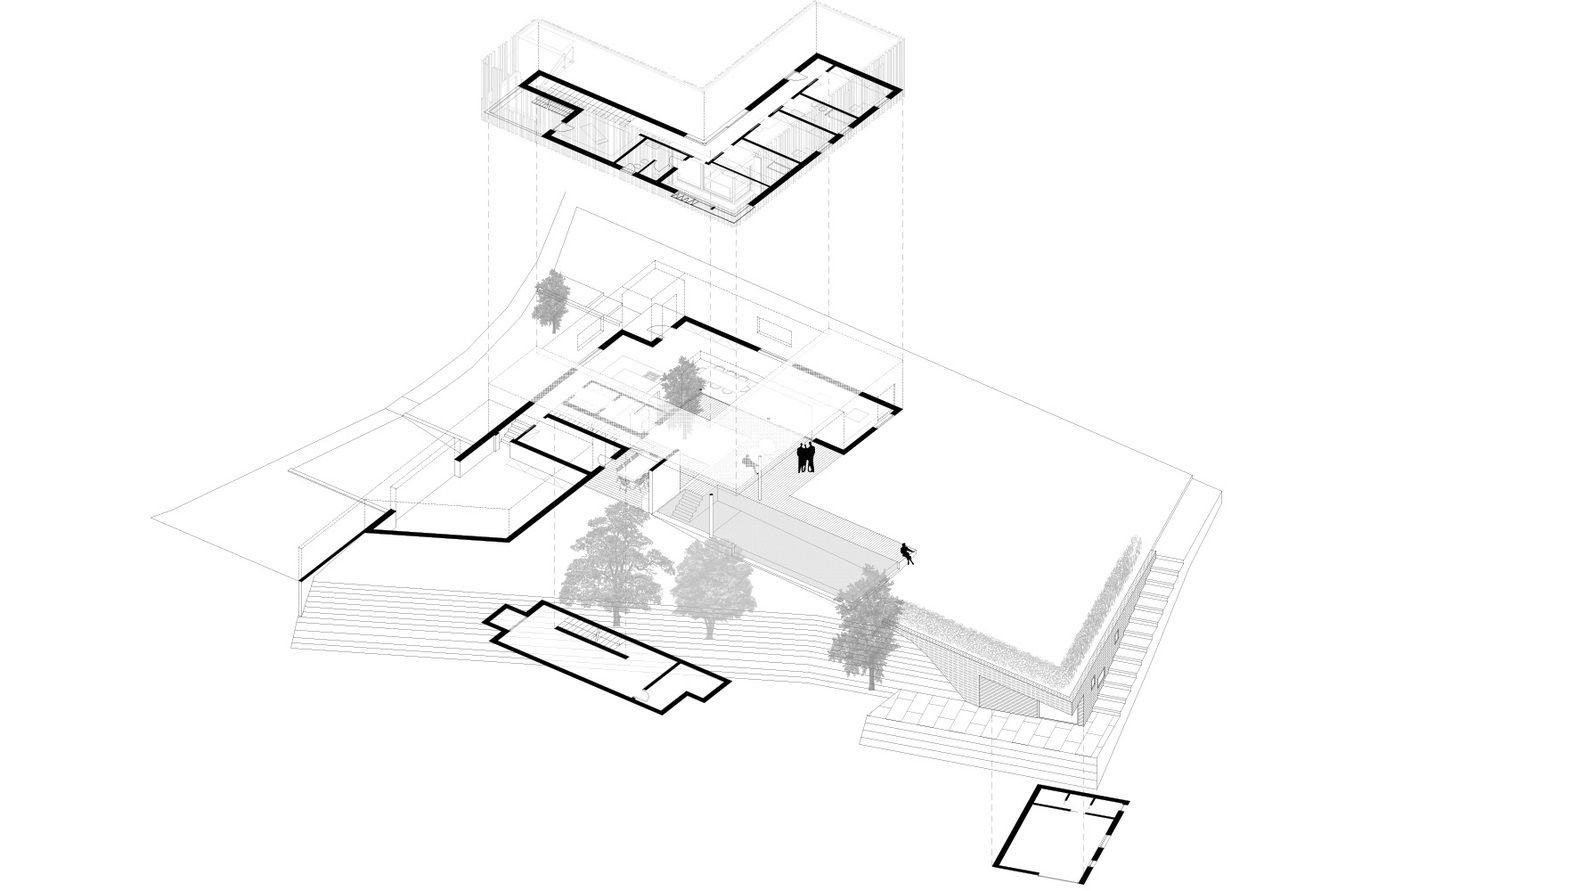 Gallery of M House / CLAB Architettura - 16